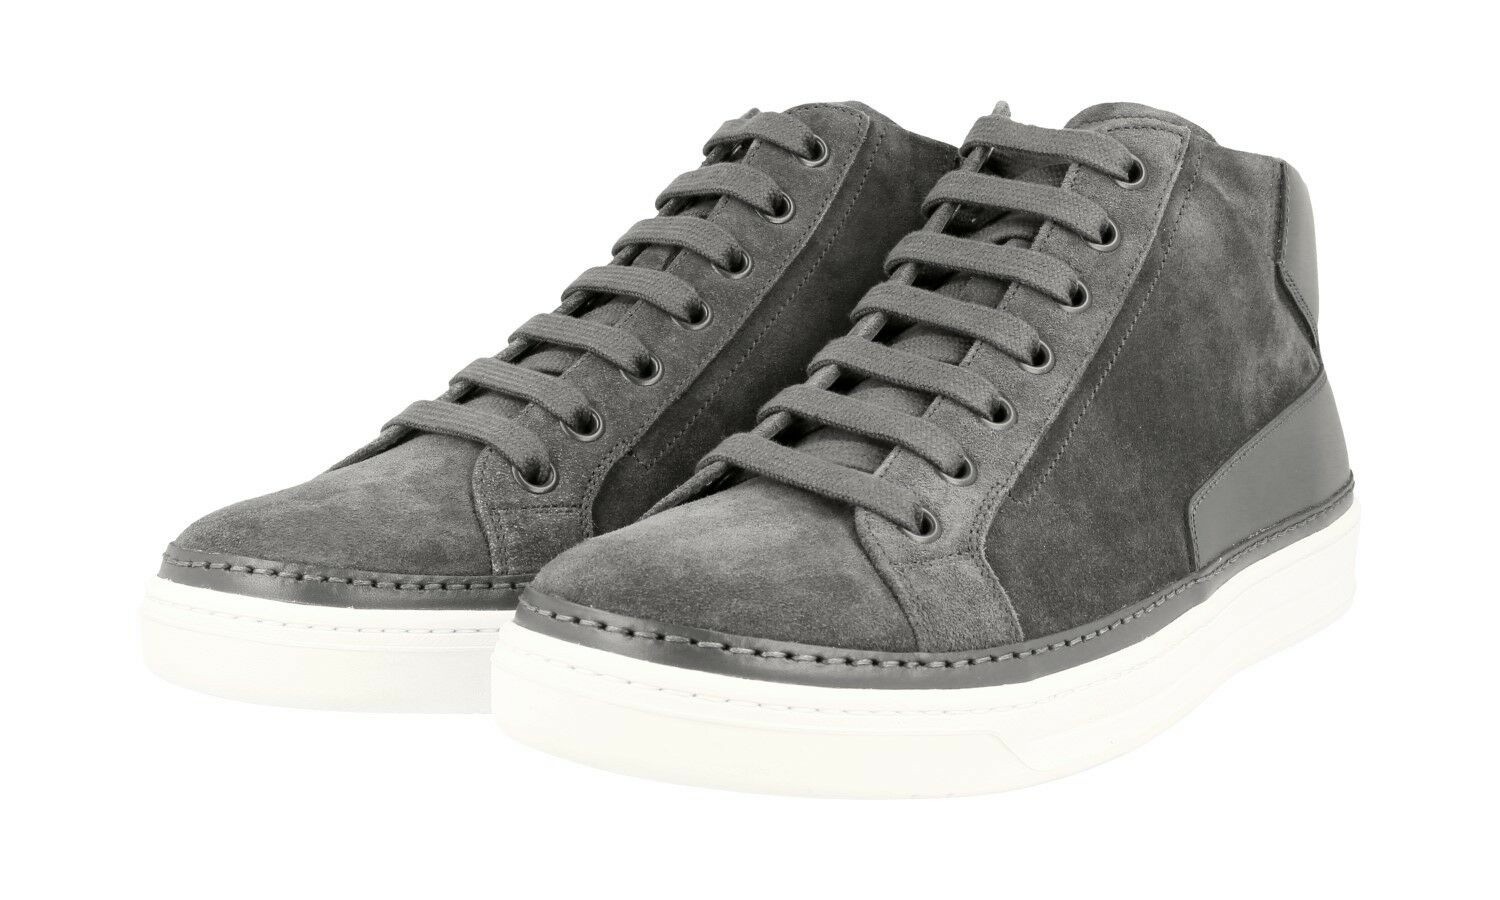 AUTHENTIC LUXURY PRADA SNEAKERS SHOES 4T2863 GREY SUEDE NEW US 10